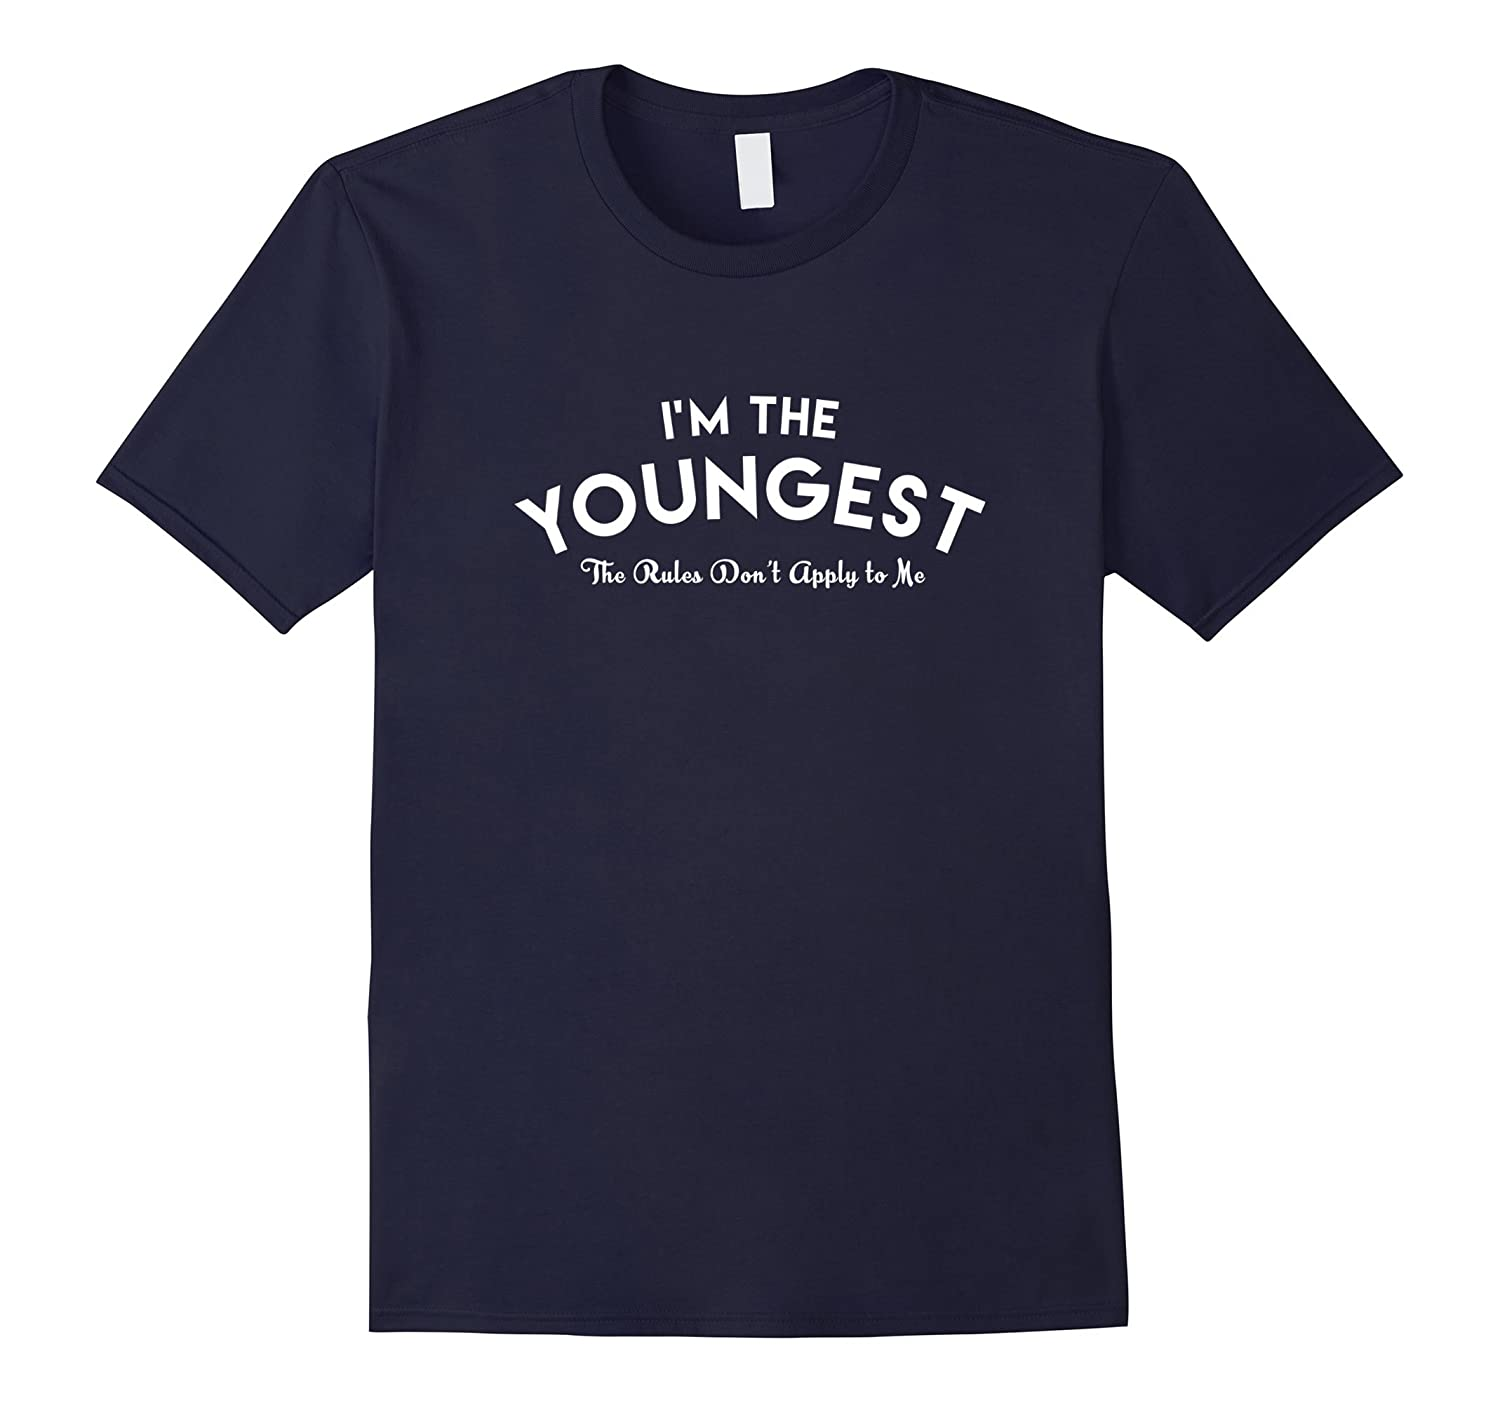 I'm The Youngest Child Shirt, Funny Rules Don't Apply Gift-Art